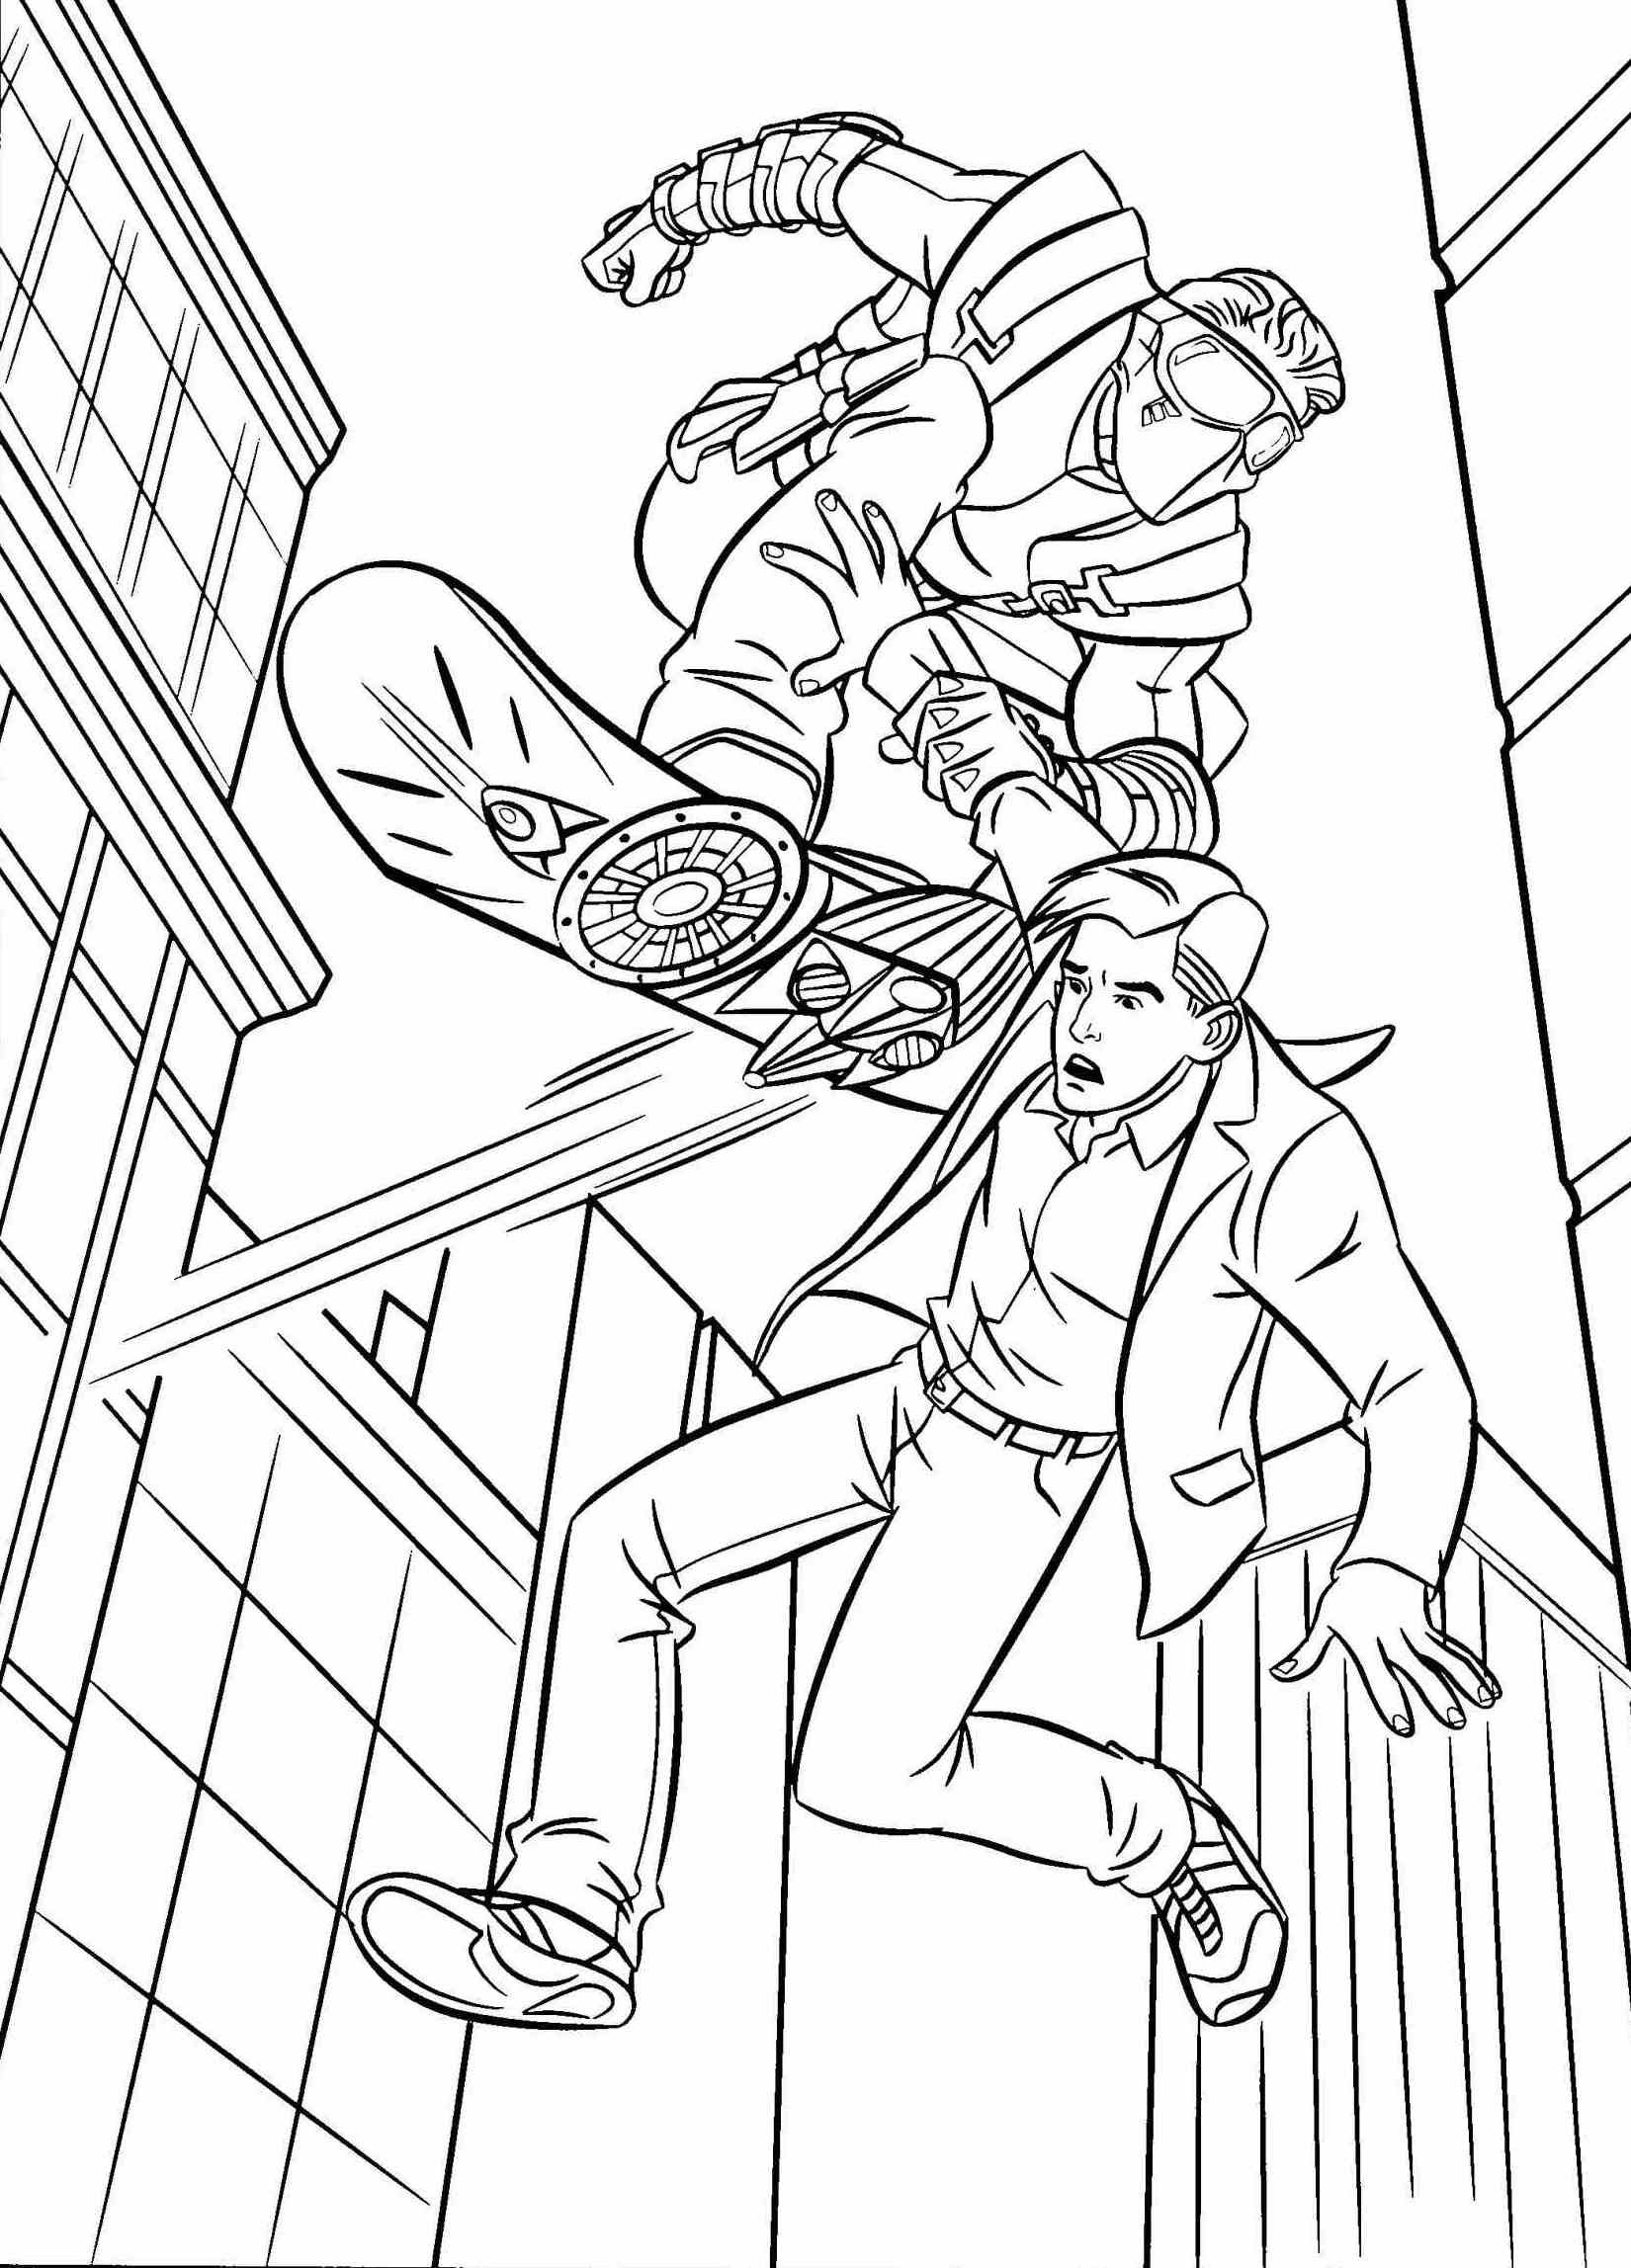 Pin By Pskpedia Com On Spiderman Coloring Pages Super Coloring Pages Spiderman Coloring Coloring Pages